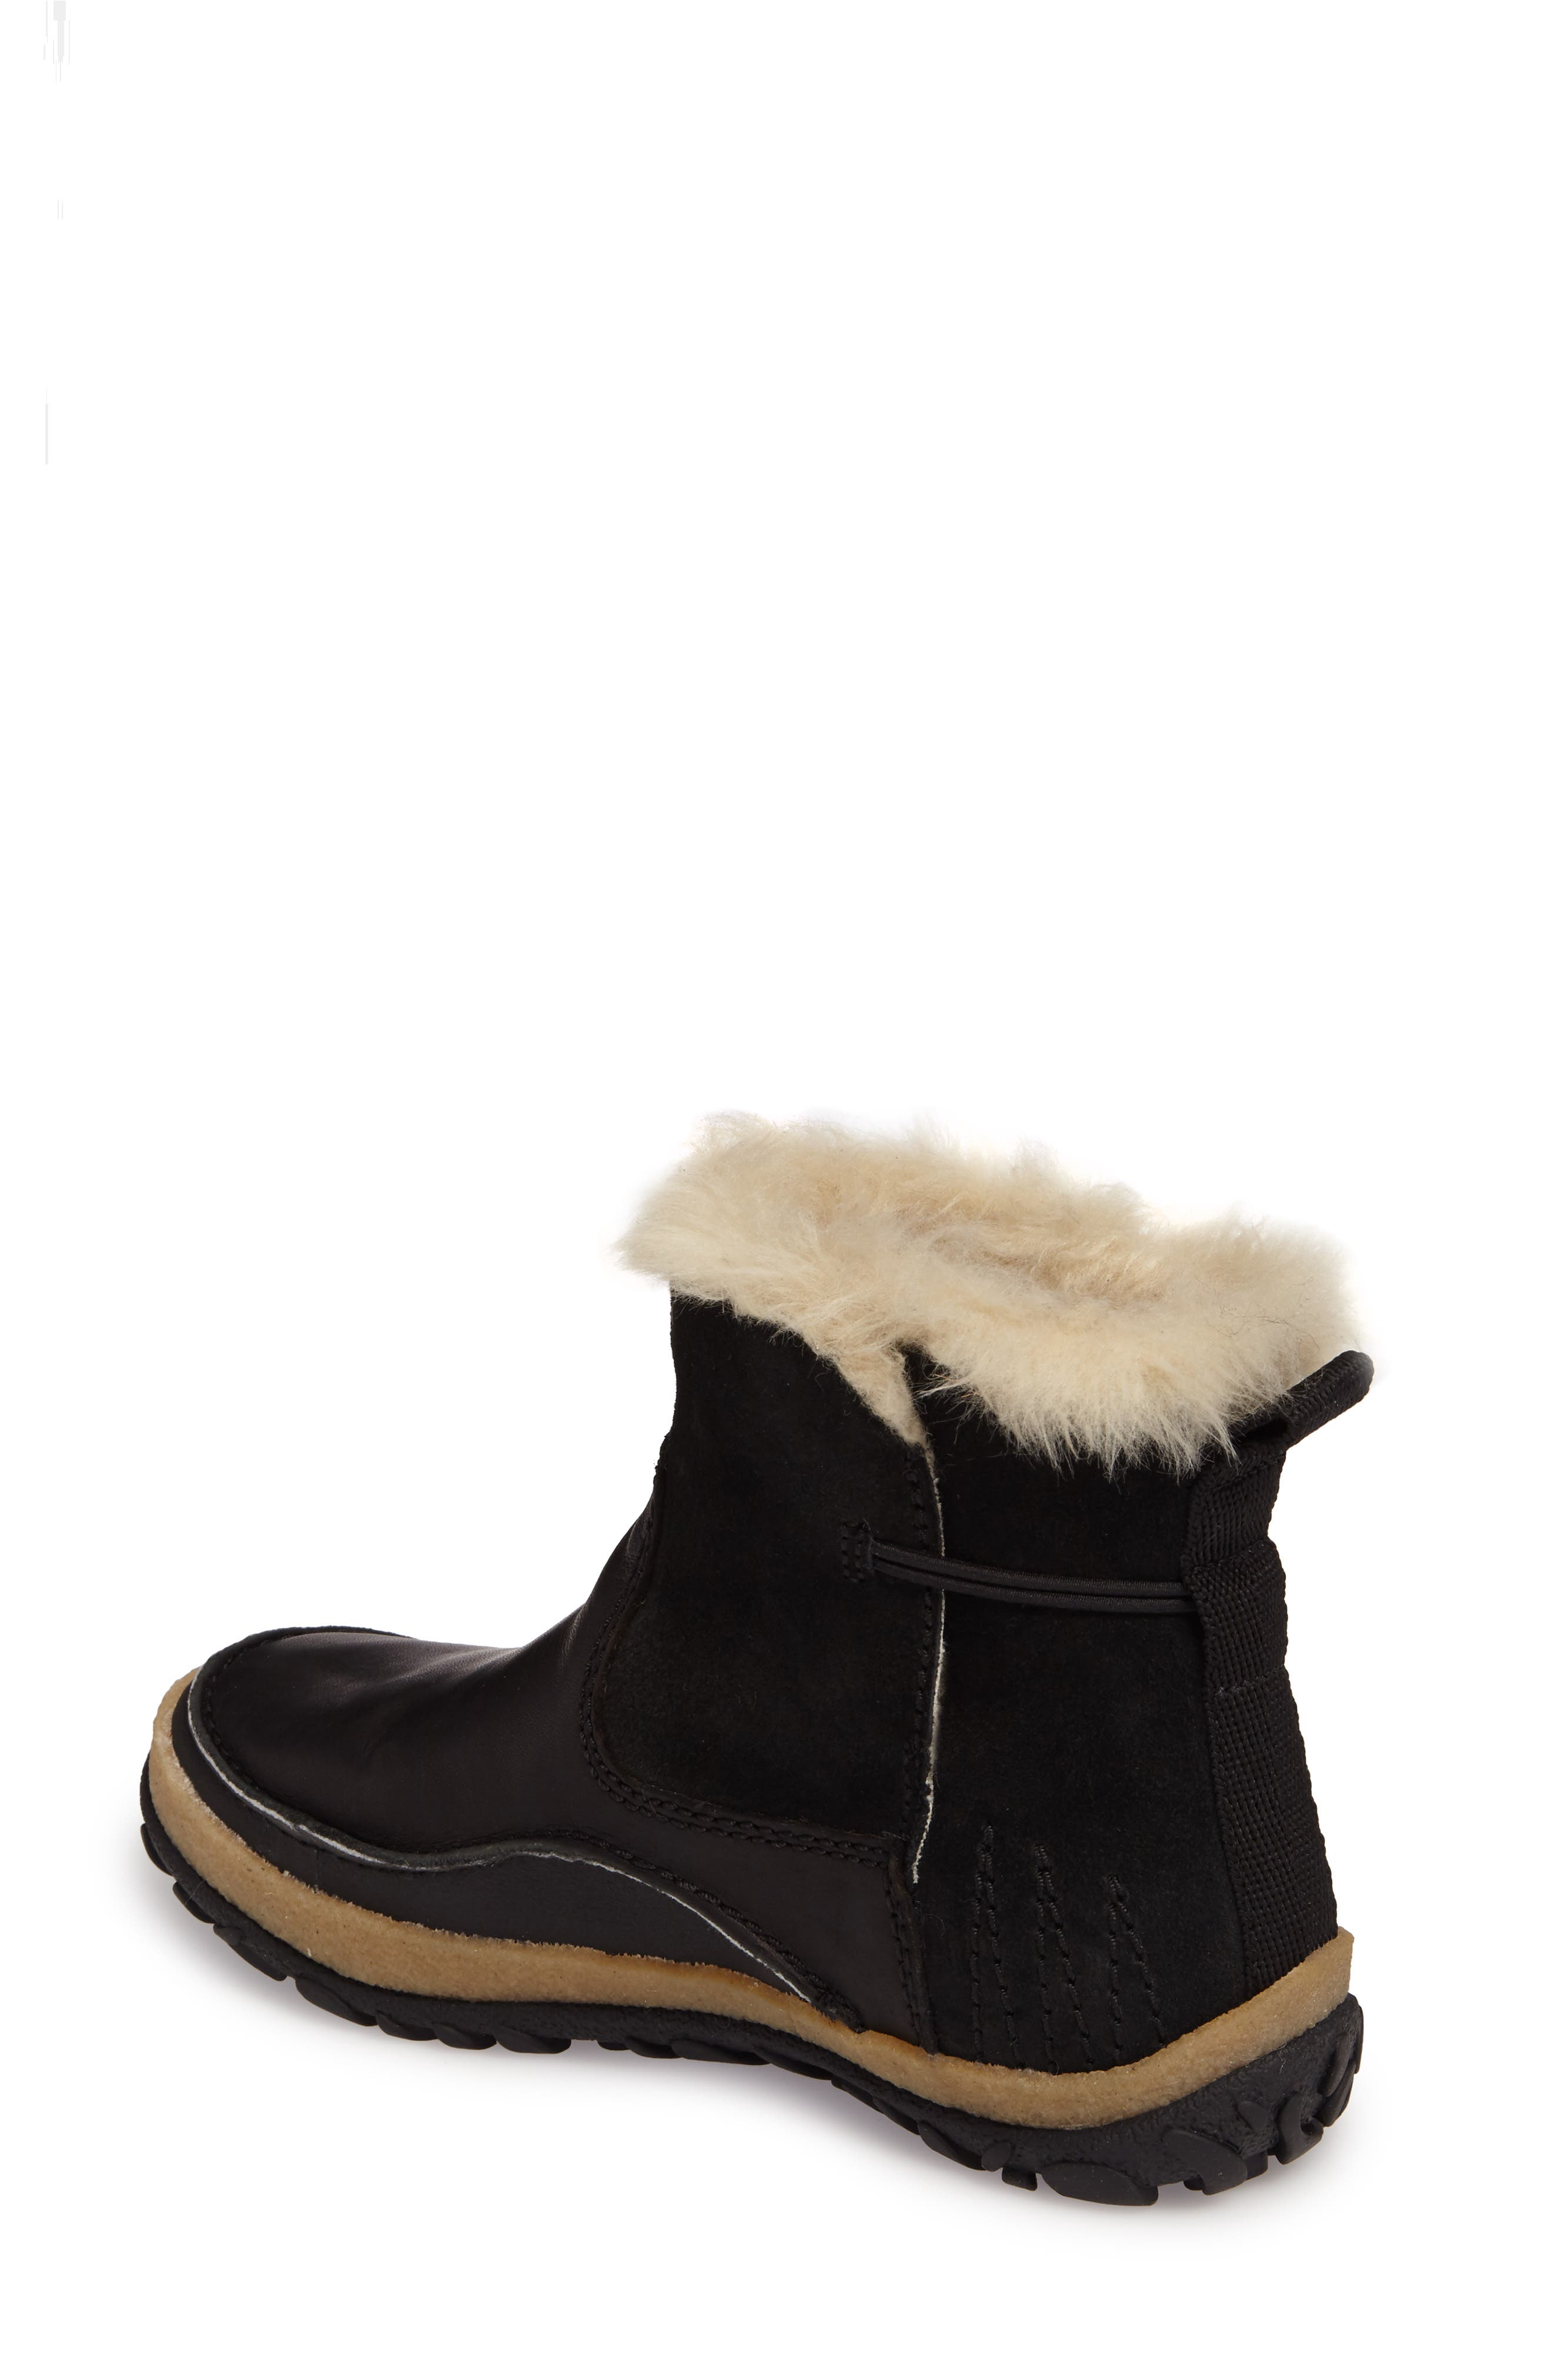 Tremblant Pull-On Polar Waterproof Bootie,                             Alternate thumbnail 5, color,